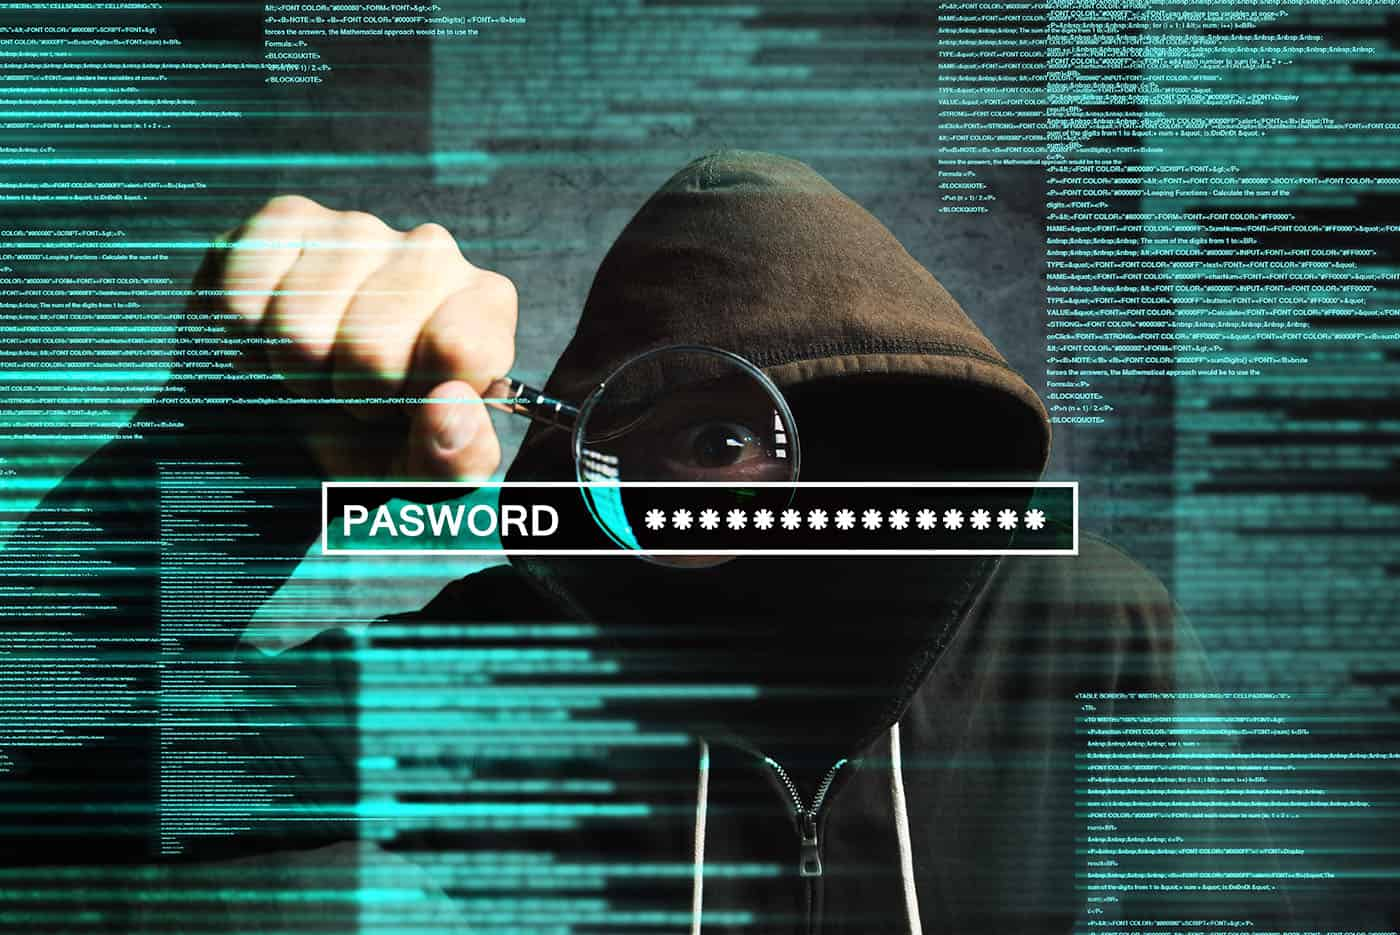 hack phish scam cybersecurity cyberthreat malware ransomware iot gdpr security awareness training report chubb password